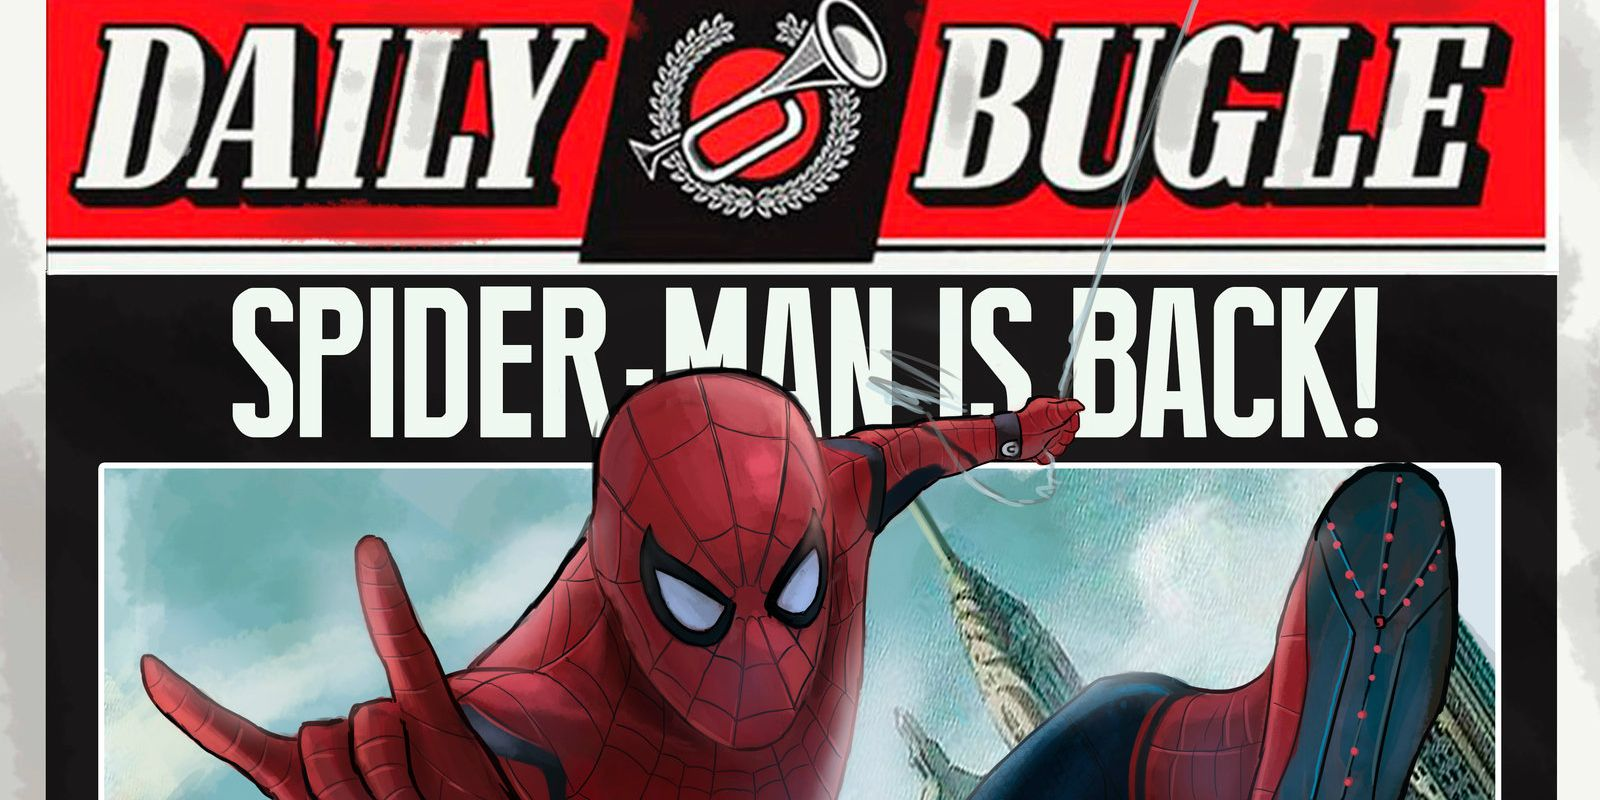 https://static0.srcdn.com/wp-content/uploads/2017/04/Spider-Man-Daily-Bugle.jpg